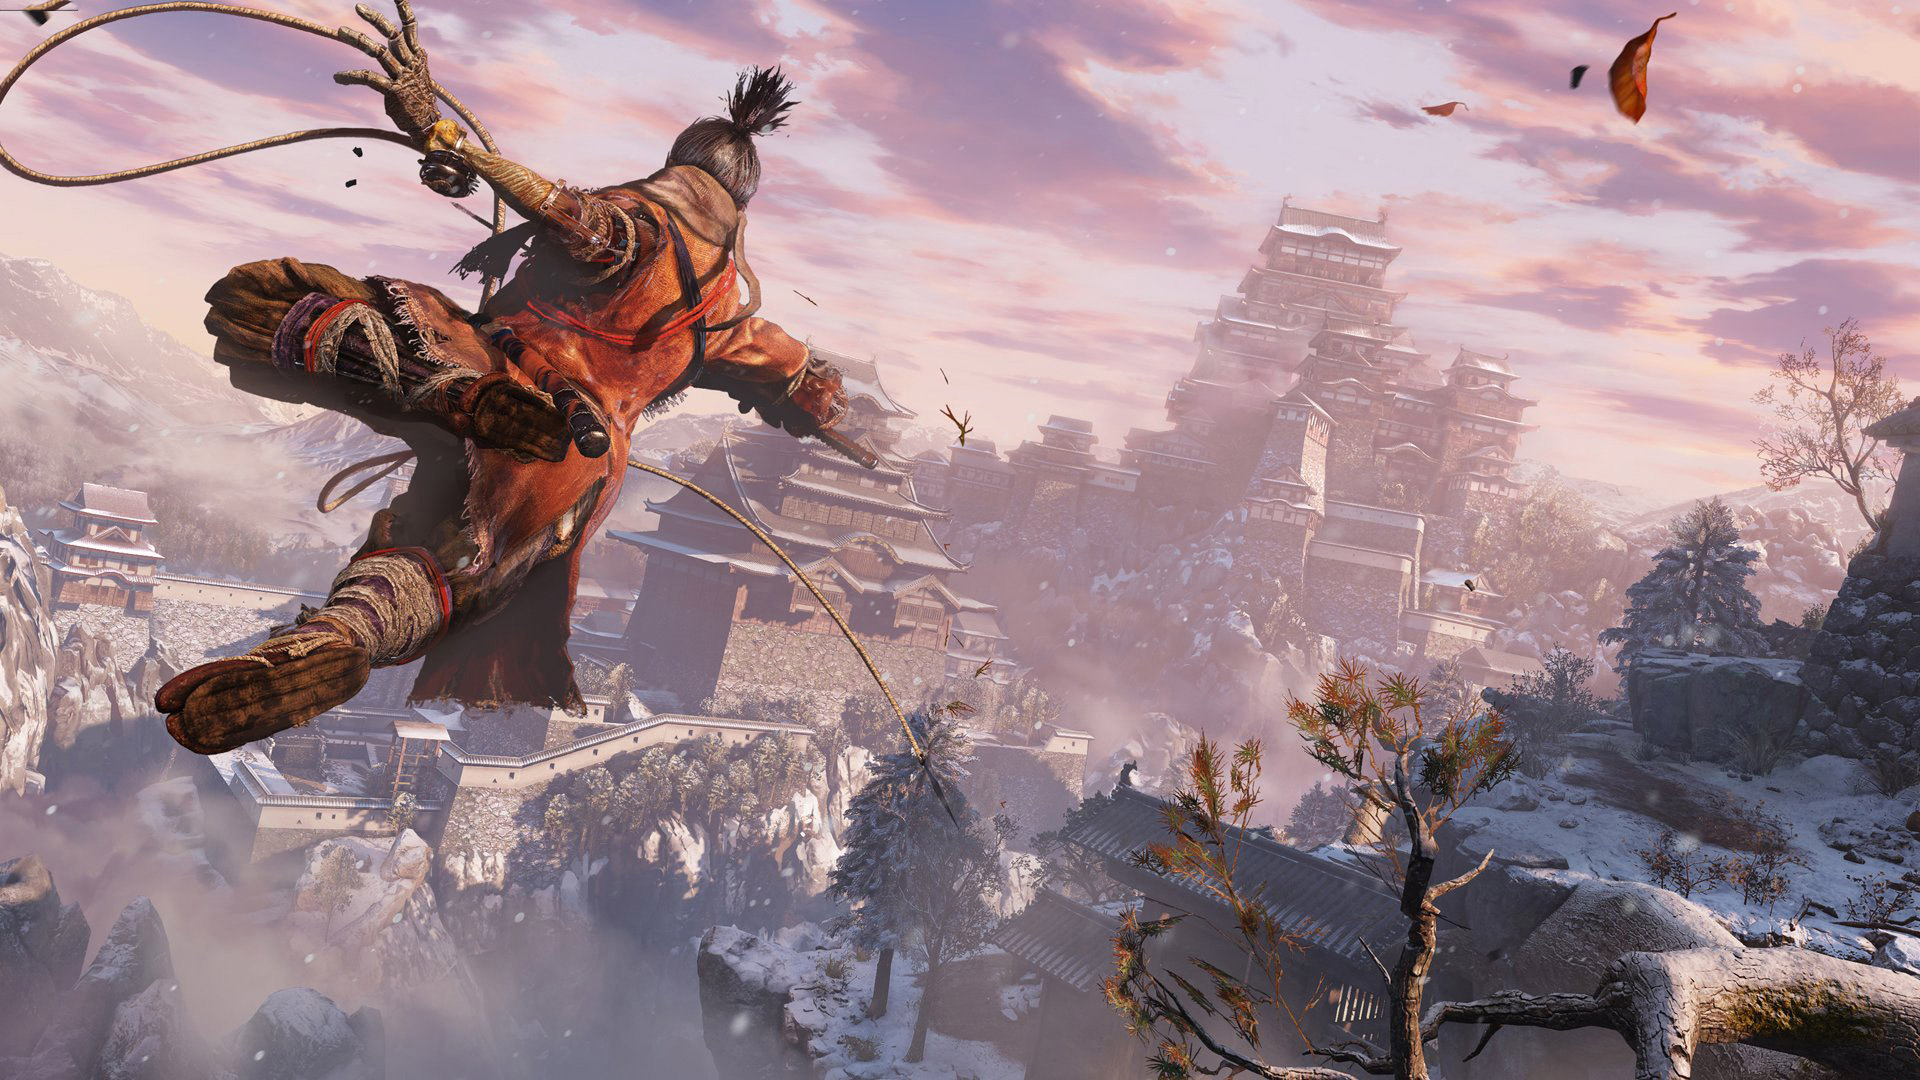 Free Sekiro: Shadows Die Twice Wallpaper in 1920x1080